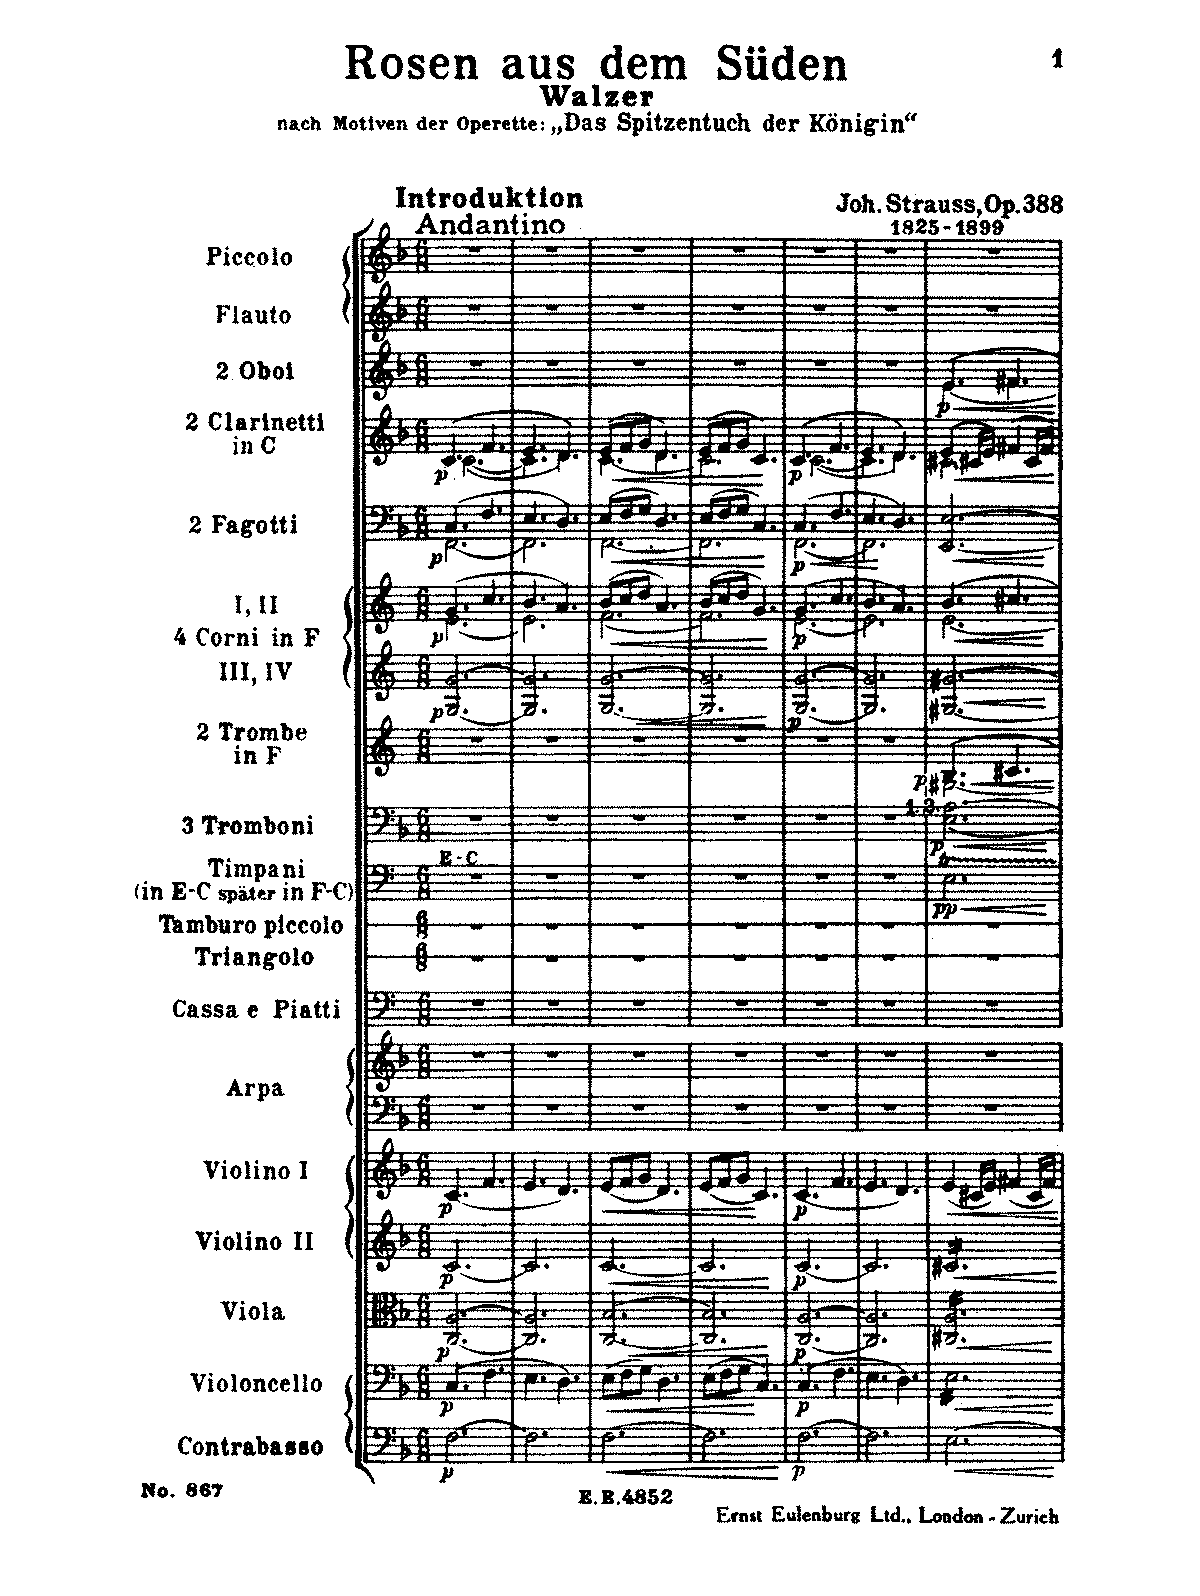 PMLP22613-Strauss, Johann - Roses in the South, Op. 388 (orch. score).pdf